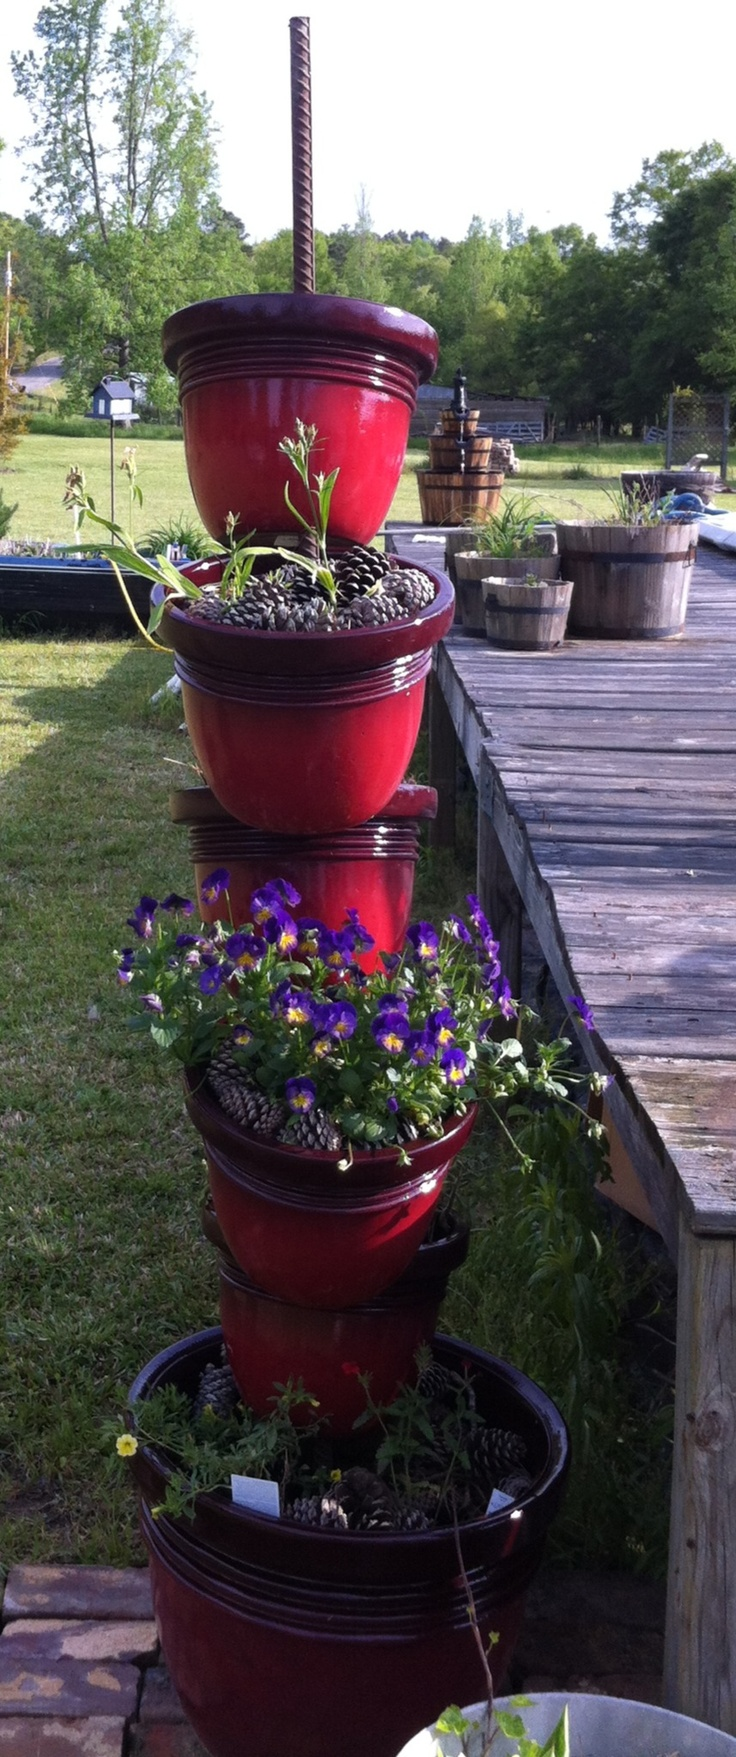 I used red plastic pots instead of terra cotta  on my stacked pots